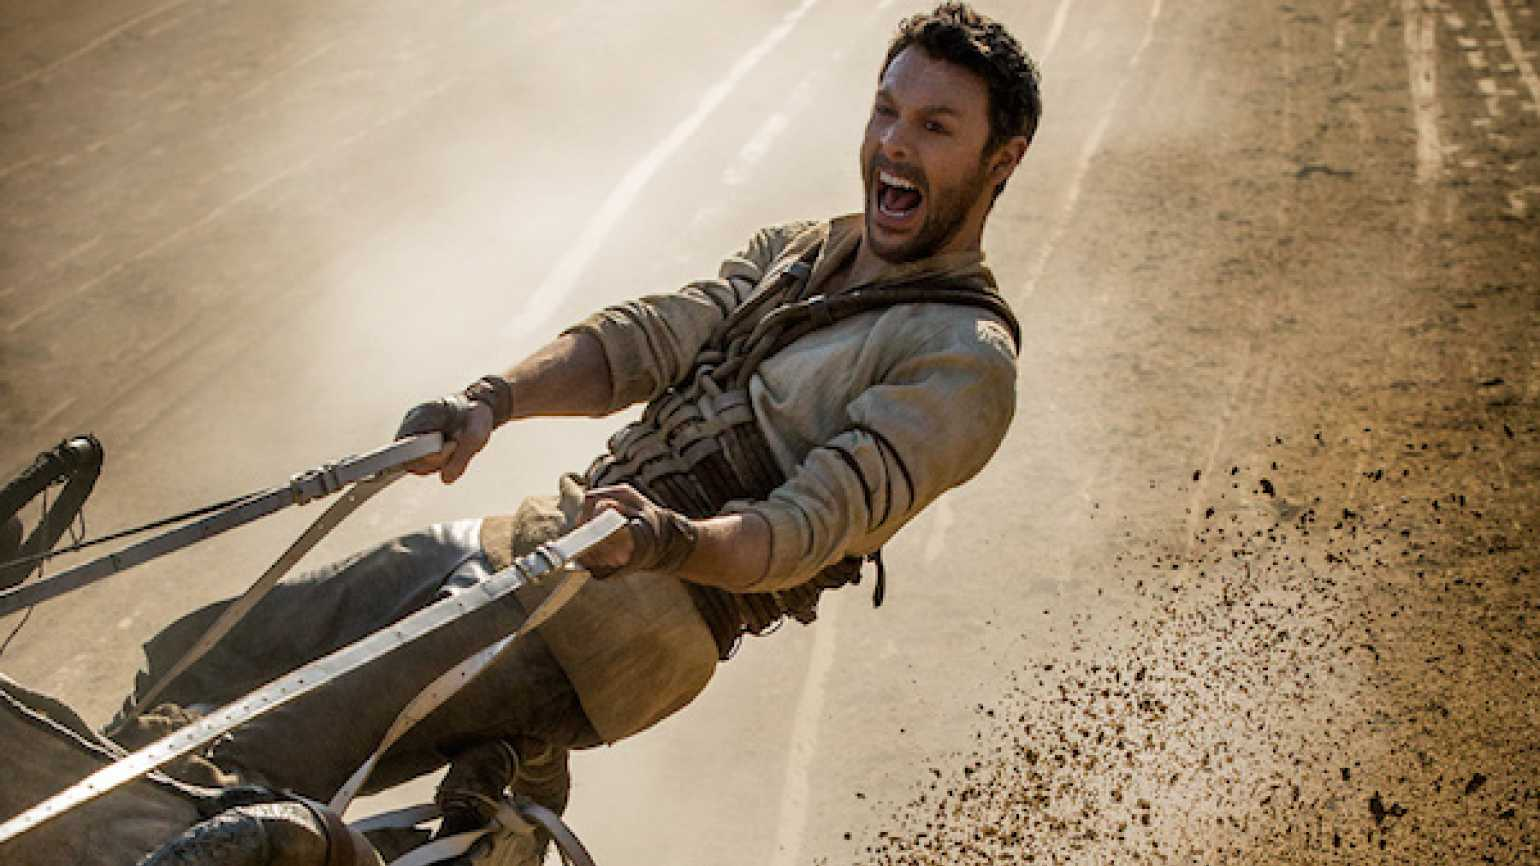 Jack Huston starring in the remake of Ben-Hur. Photo: Paramount Pictures.